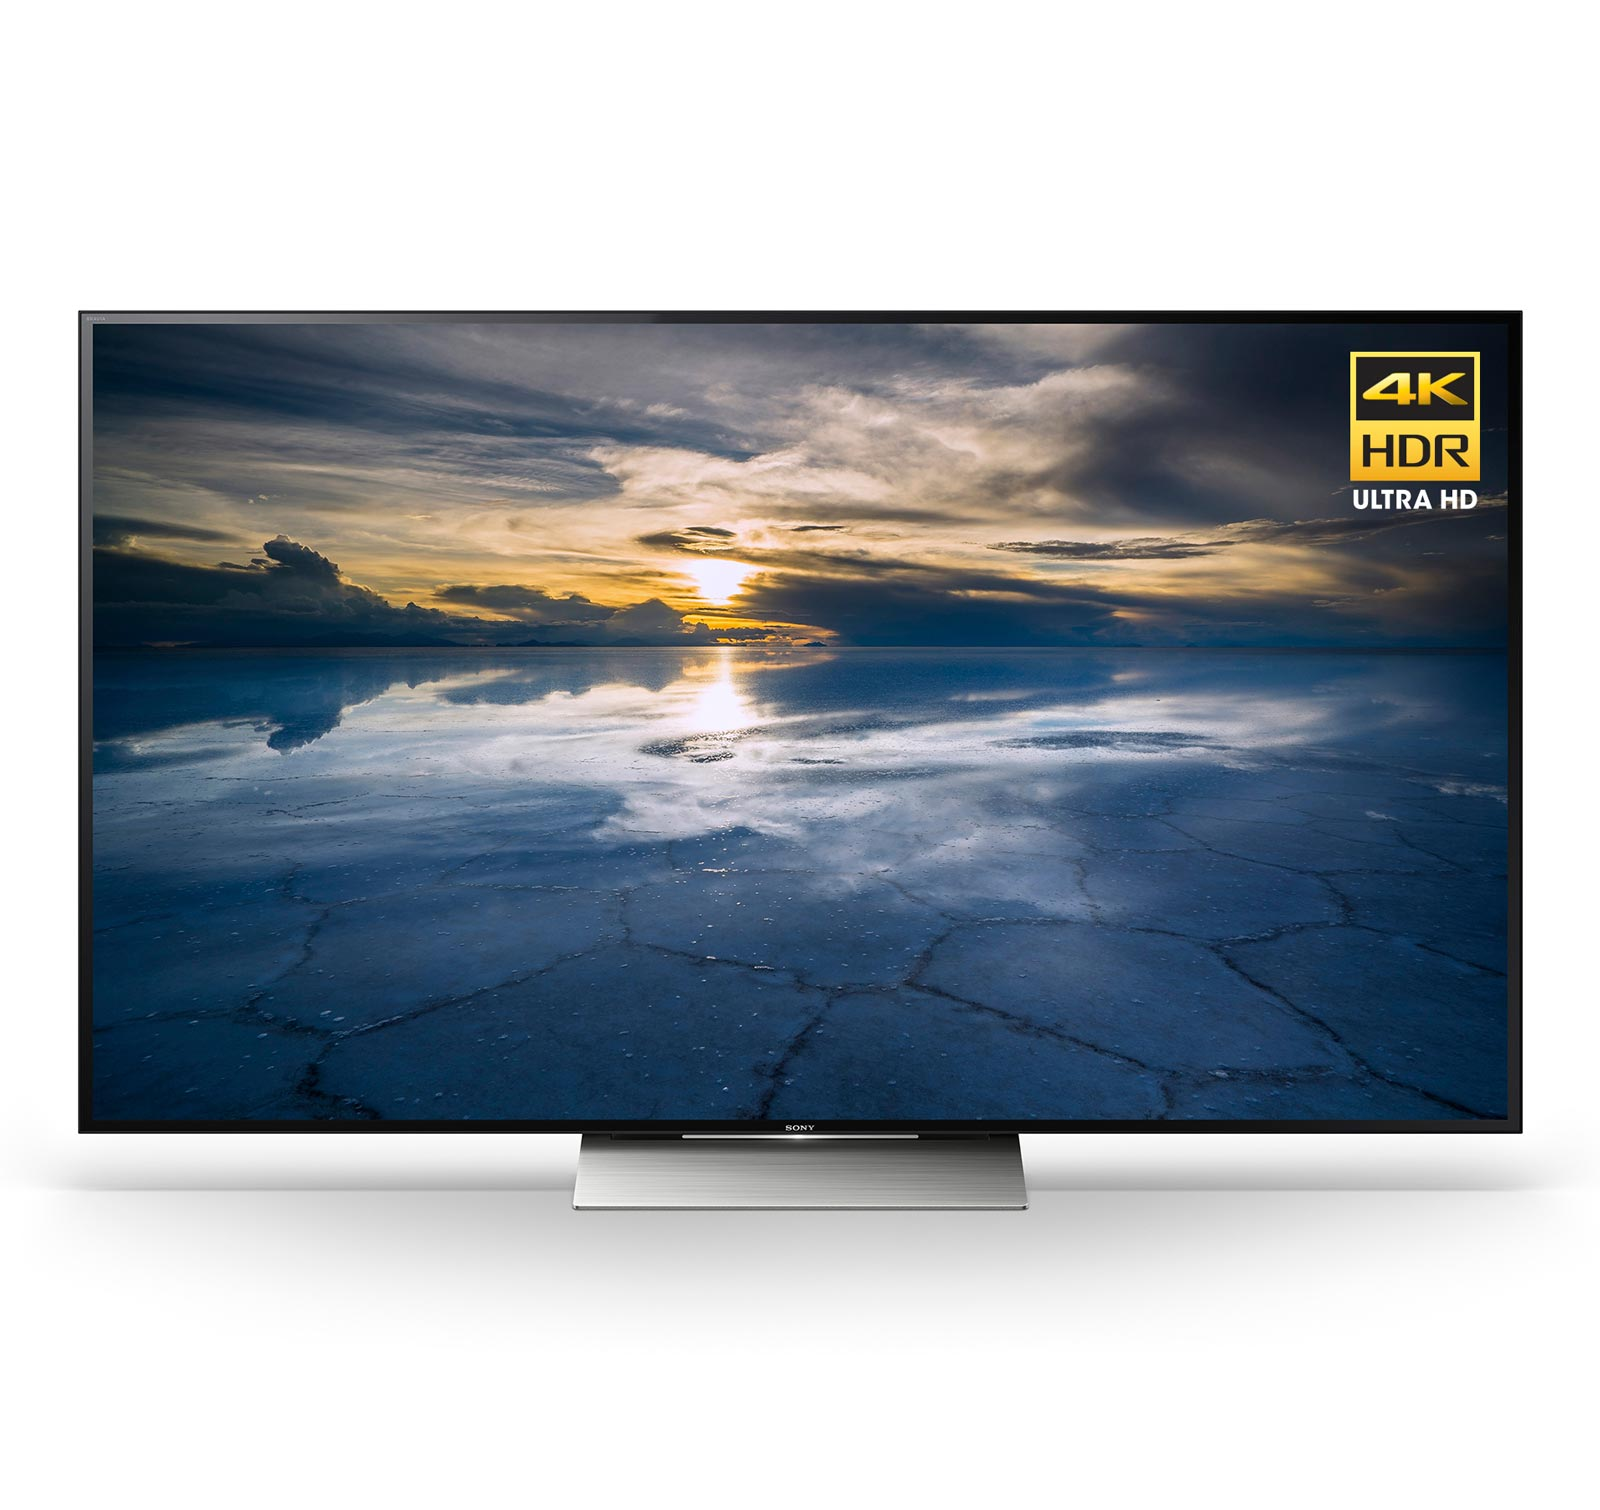 Sony XBR-55X930D 55-Inch 4K Ultra HD 3D Smart TV